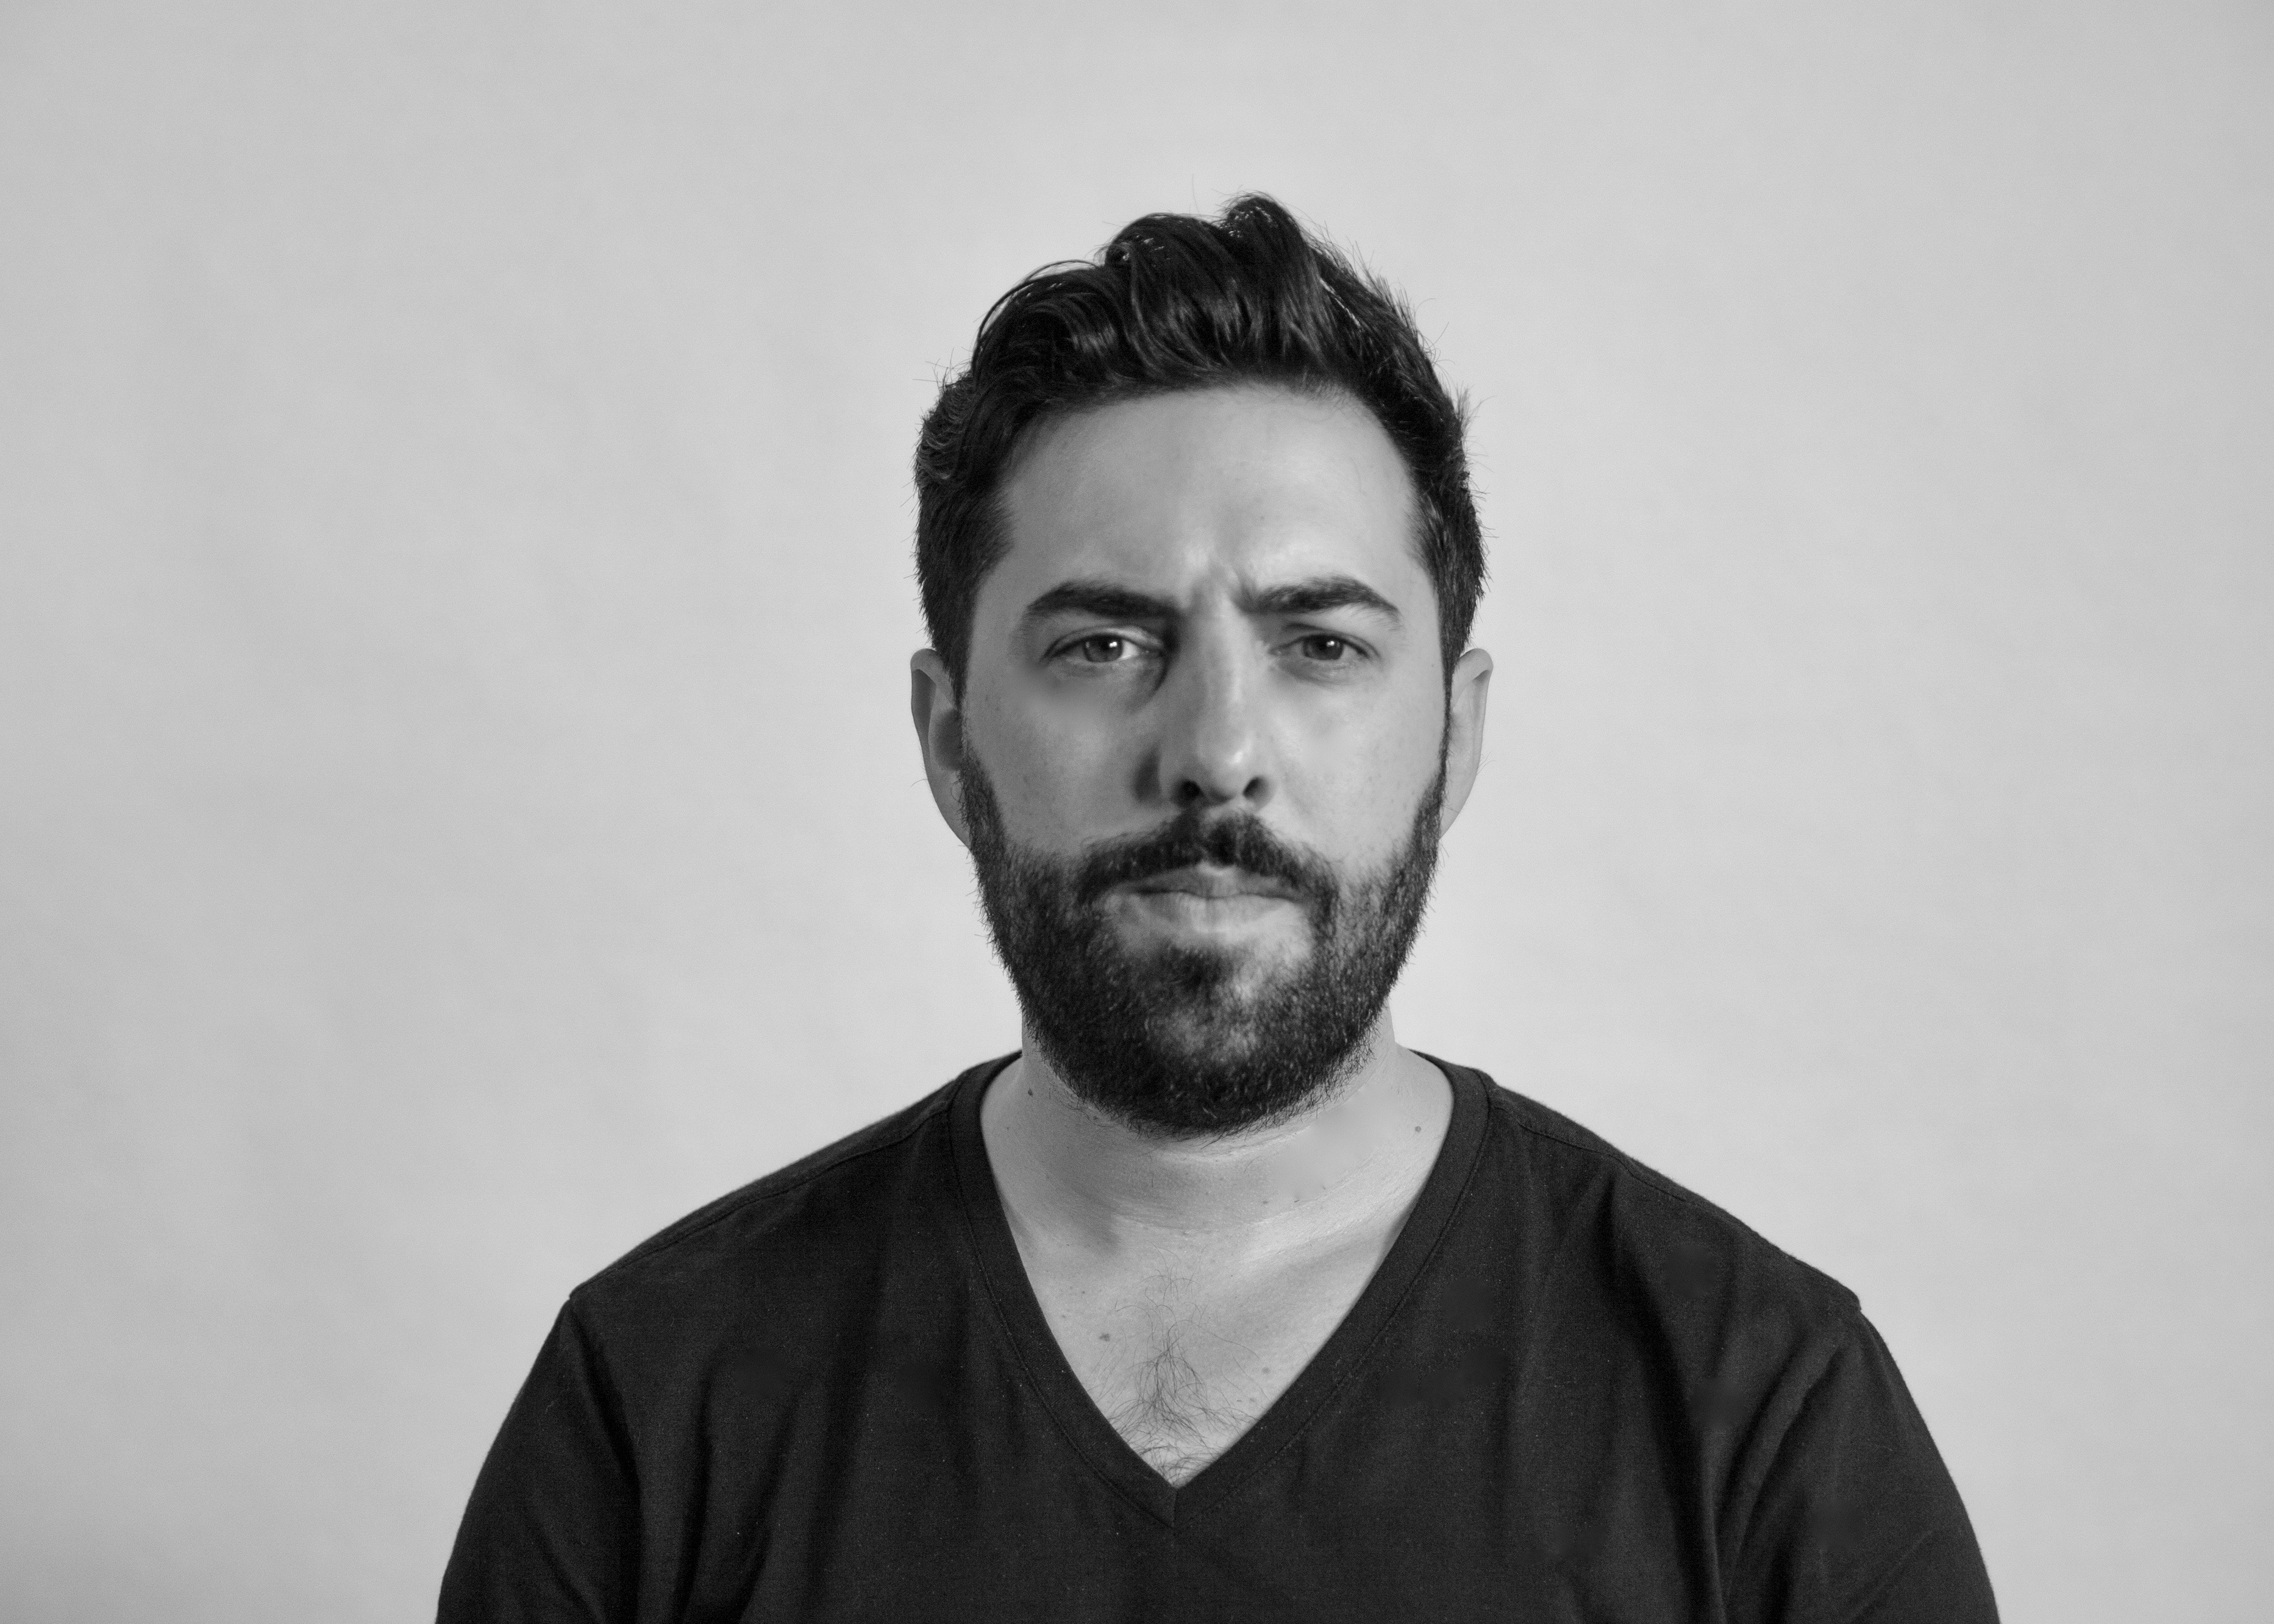 DECON Adds Mike Lobikis as Head of Strategy and Development